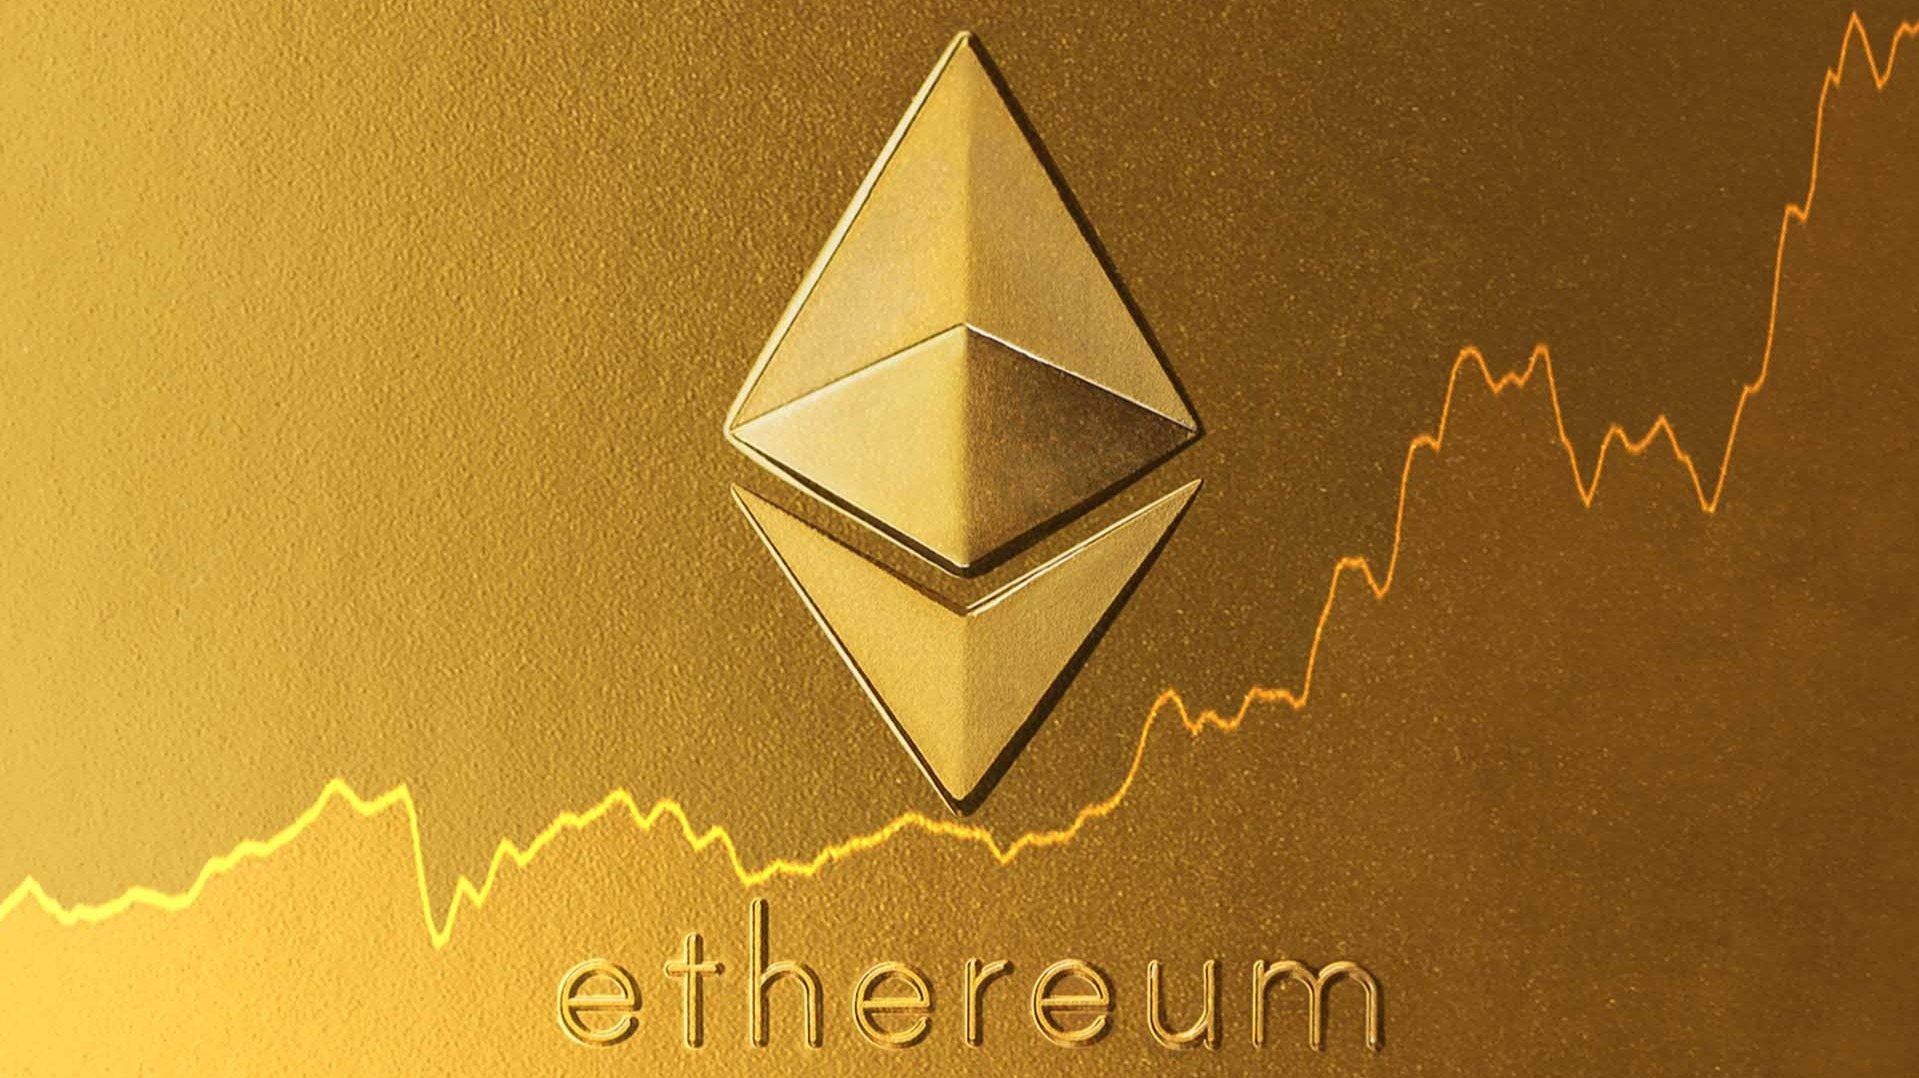 ETH may have just entered the bullish zone (TA Master)